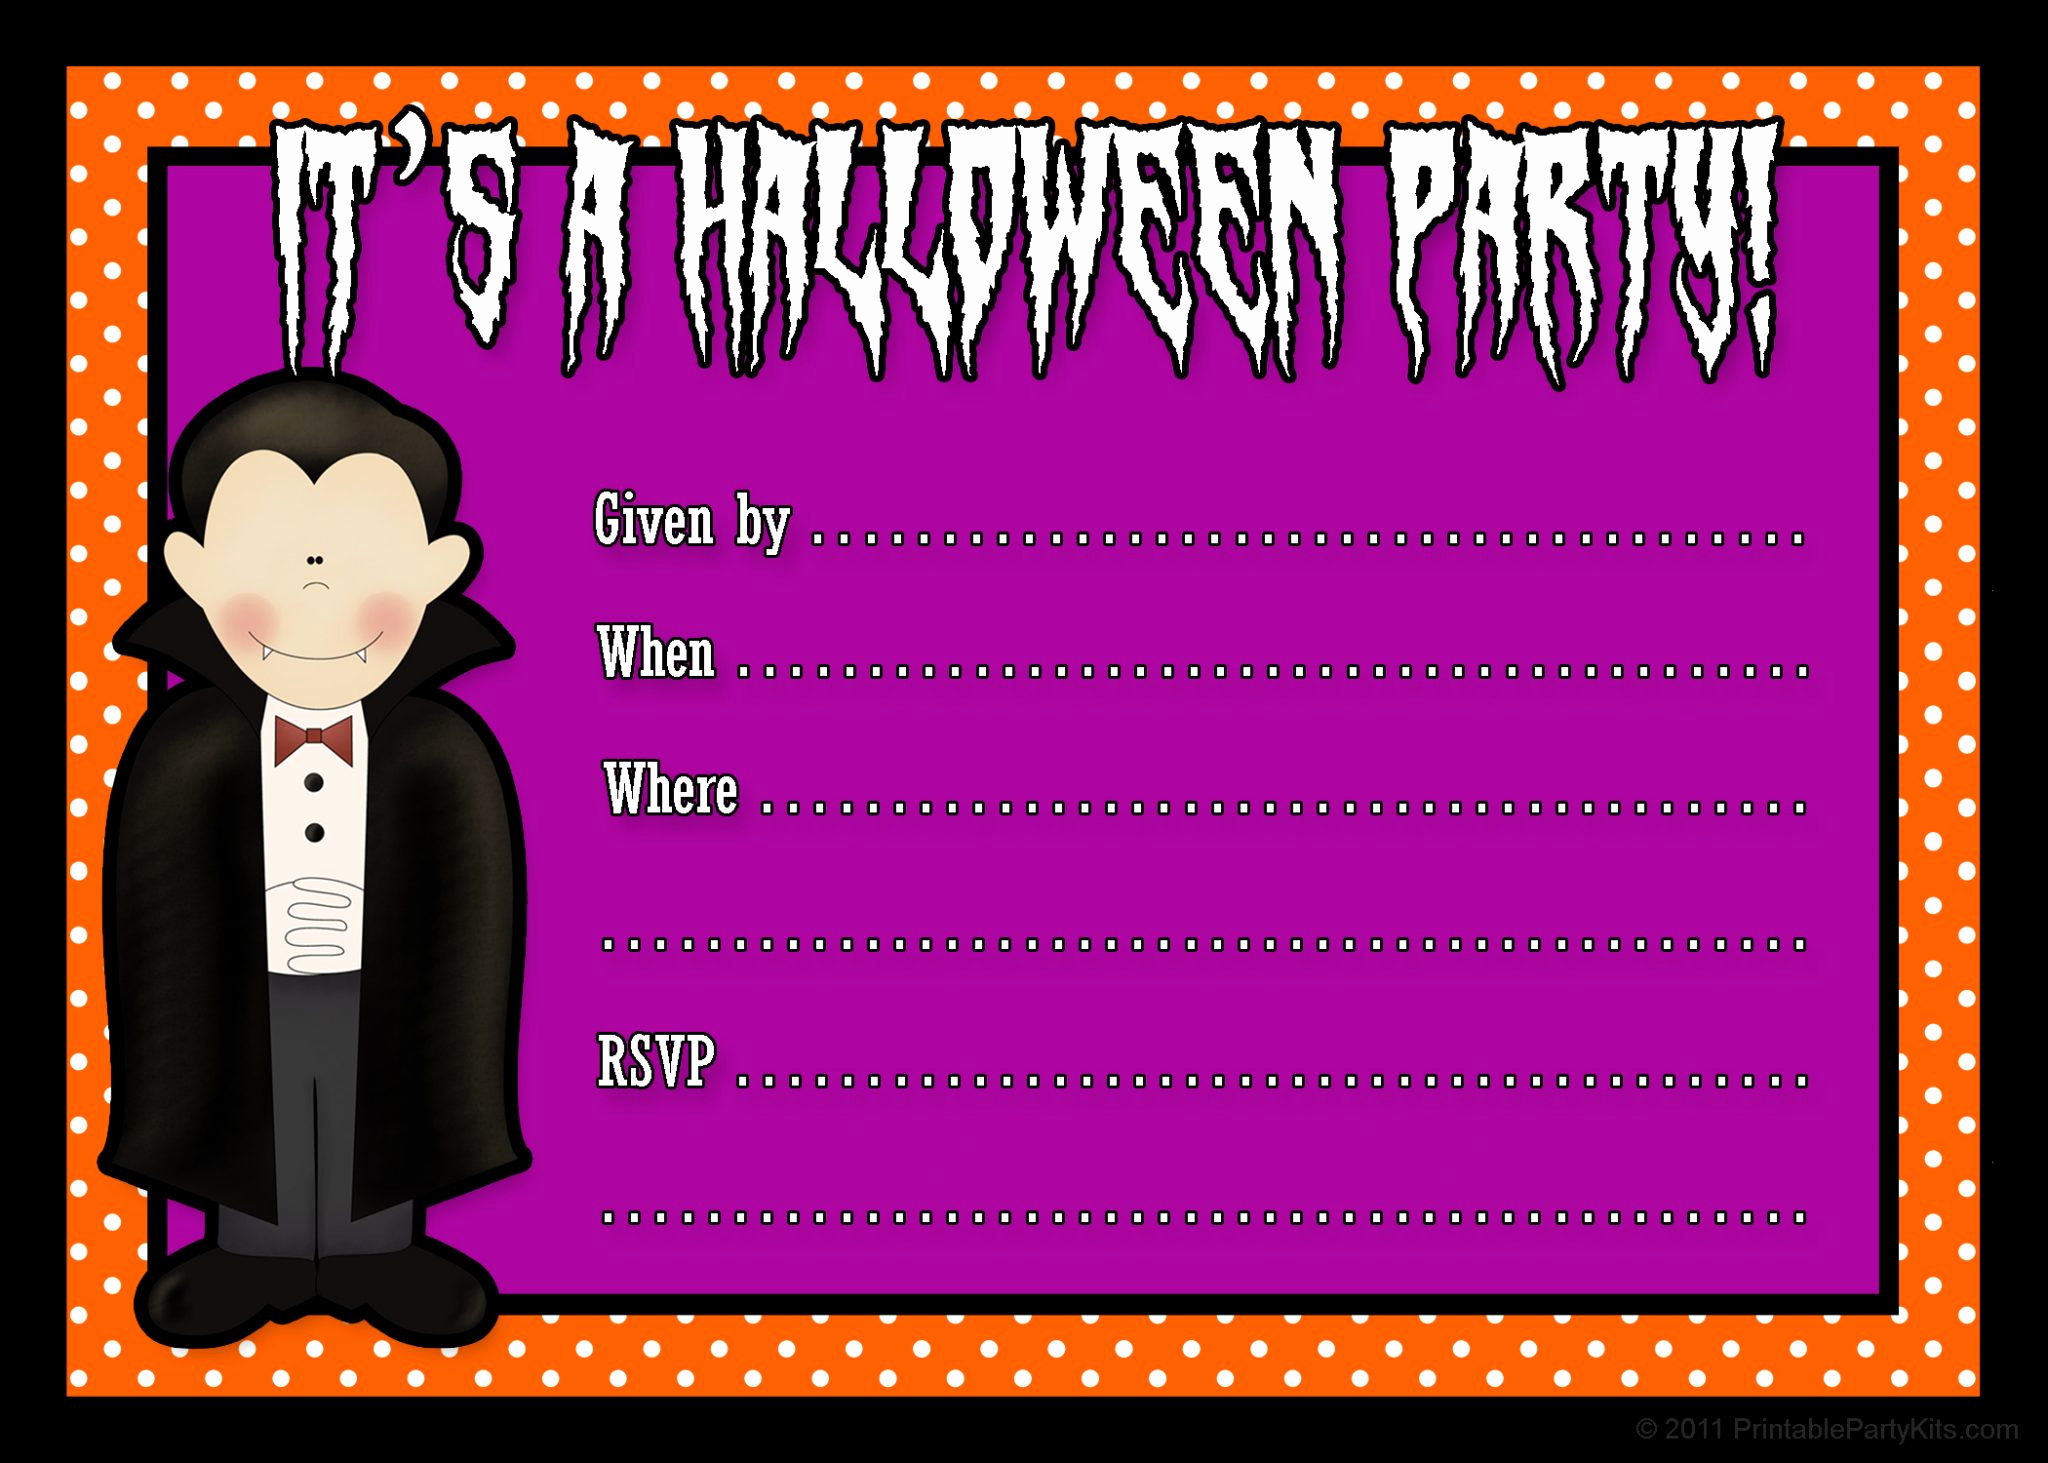 Halloween Party Invites Templates Best Of Free Printable Halloween Party Invites